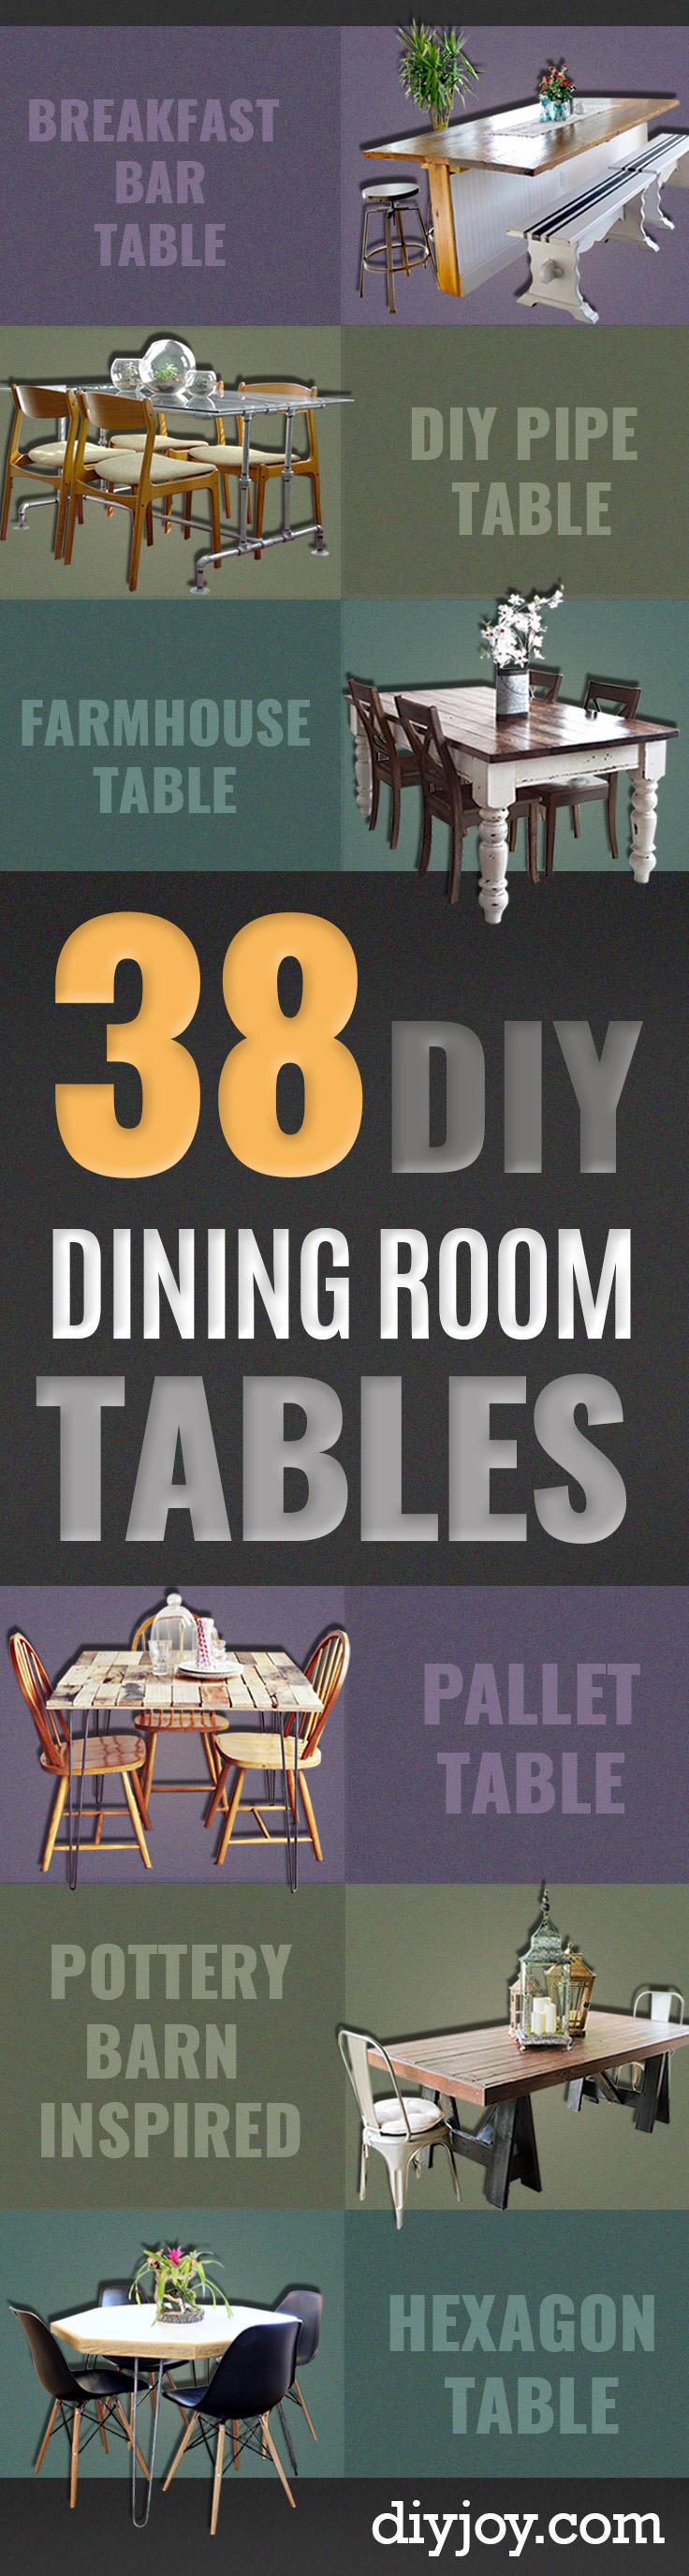 38 diy dining room tables diy dining room table projects creative do it yourself tables and ideas you can make solutioingenieria Image collections